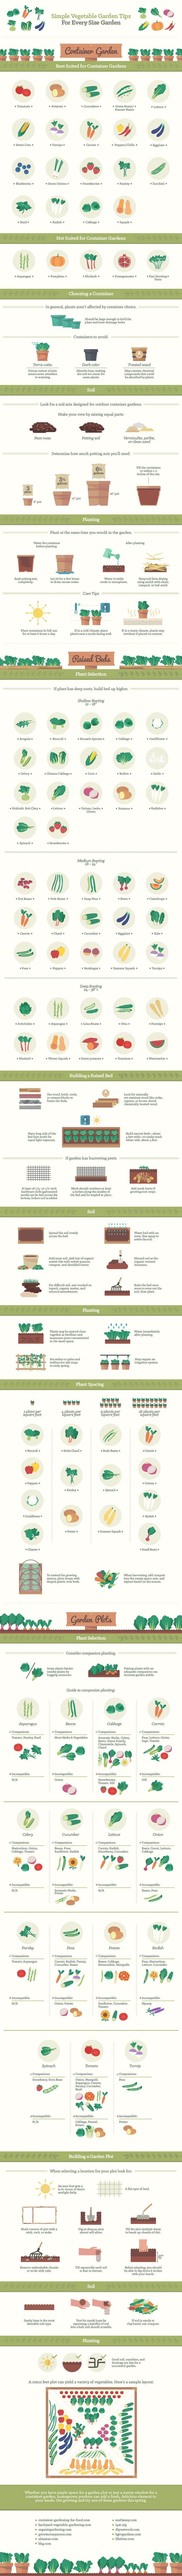 Simple Vegetable Garden Tips For Every Size Garden #infographic ~ Visualistan